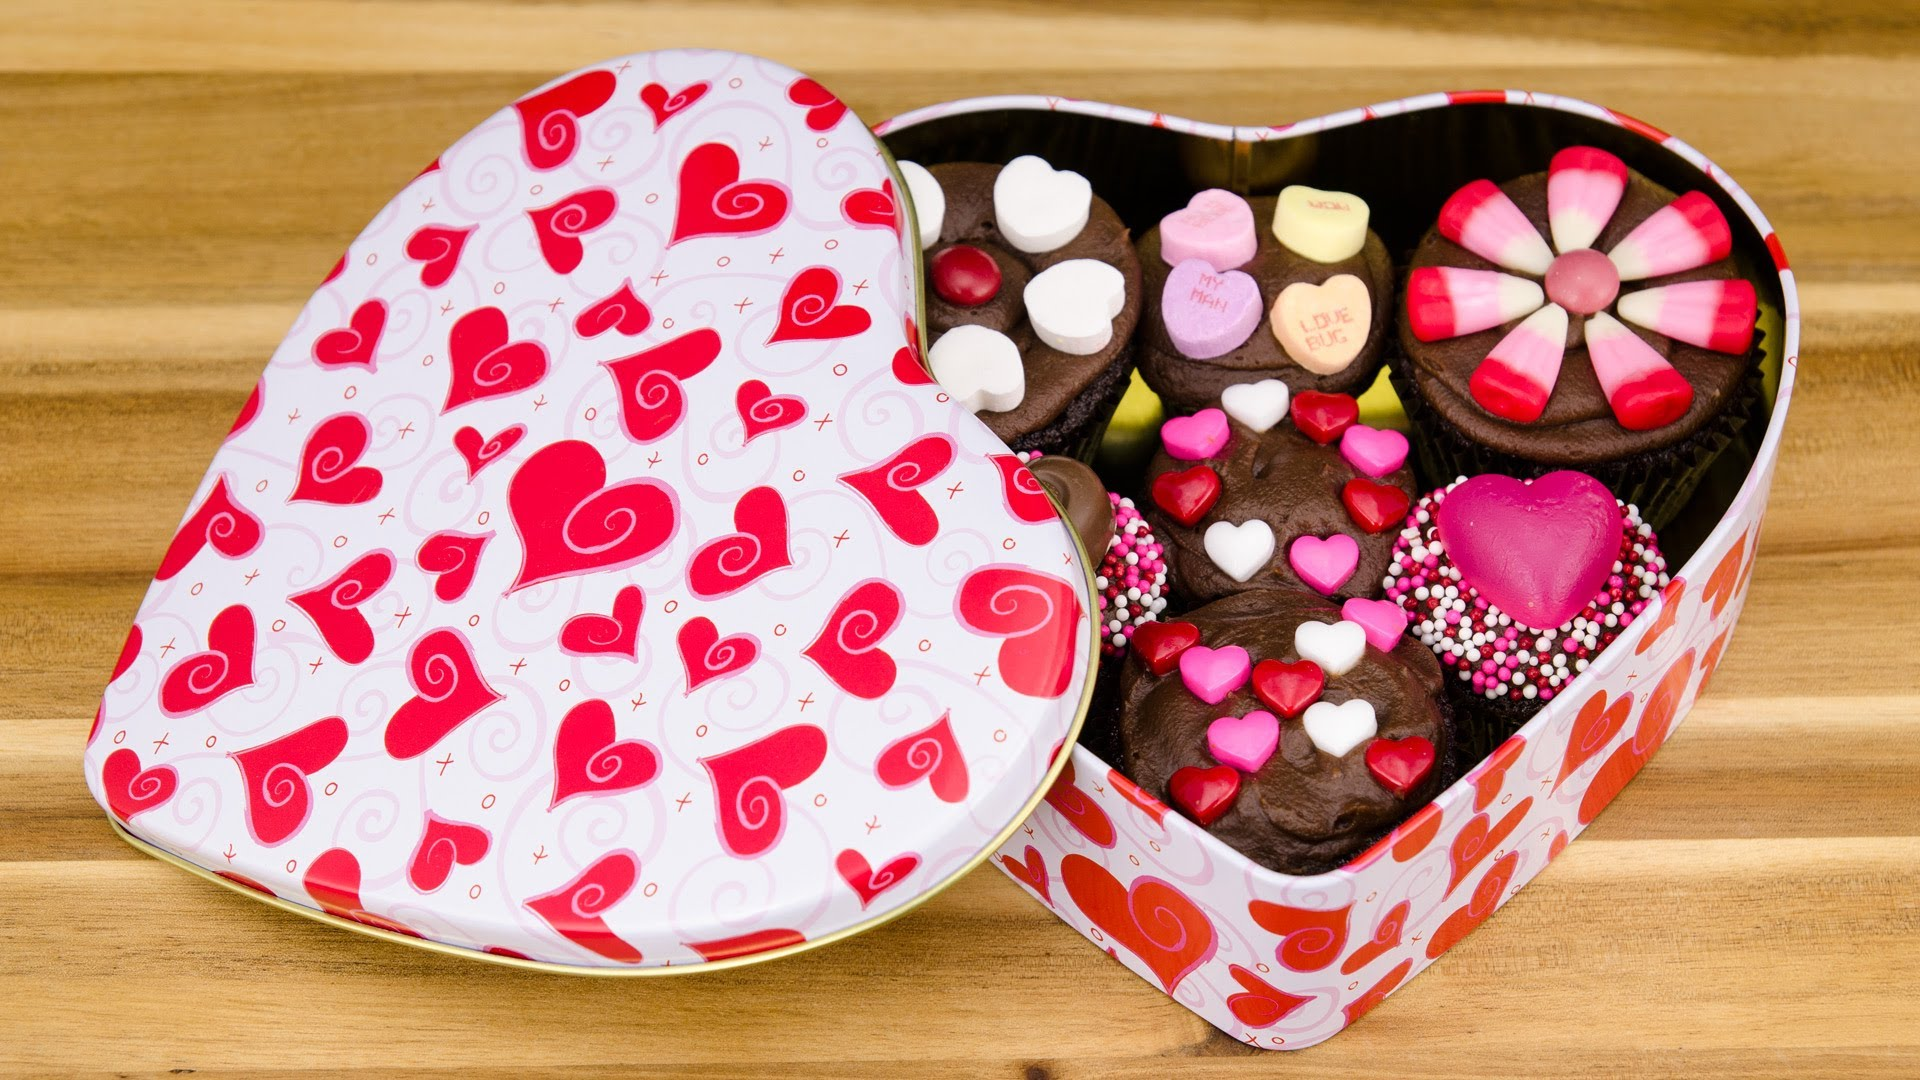 9 Cupcakes In Box With Heart Chocolates On Top Photo Valentines S